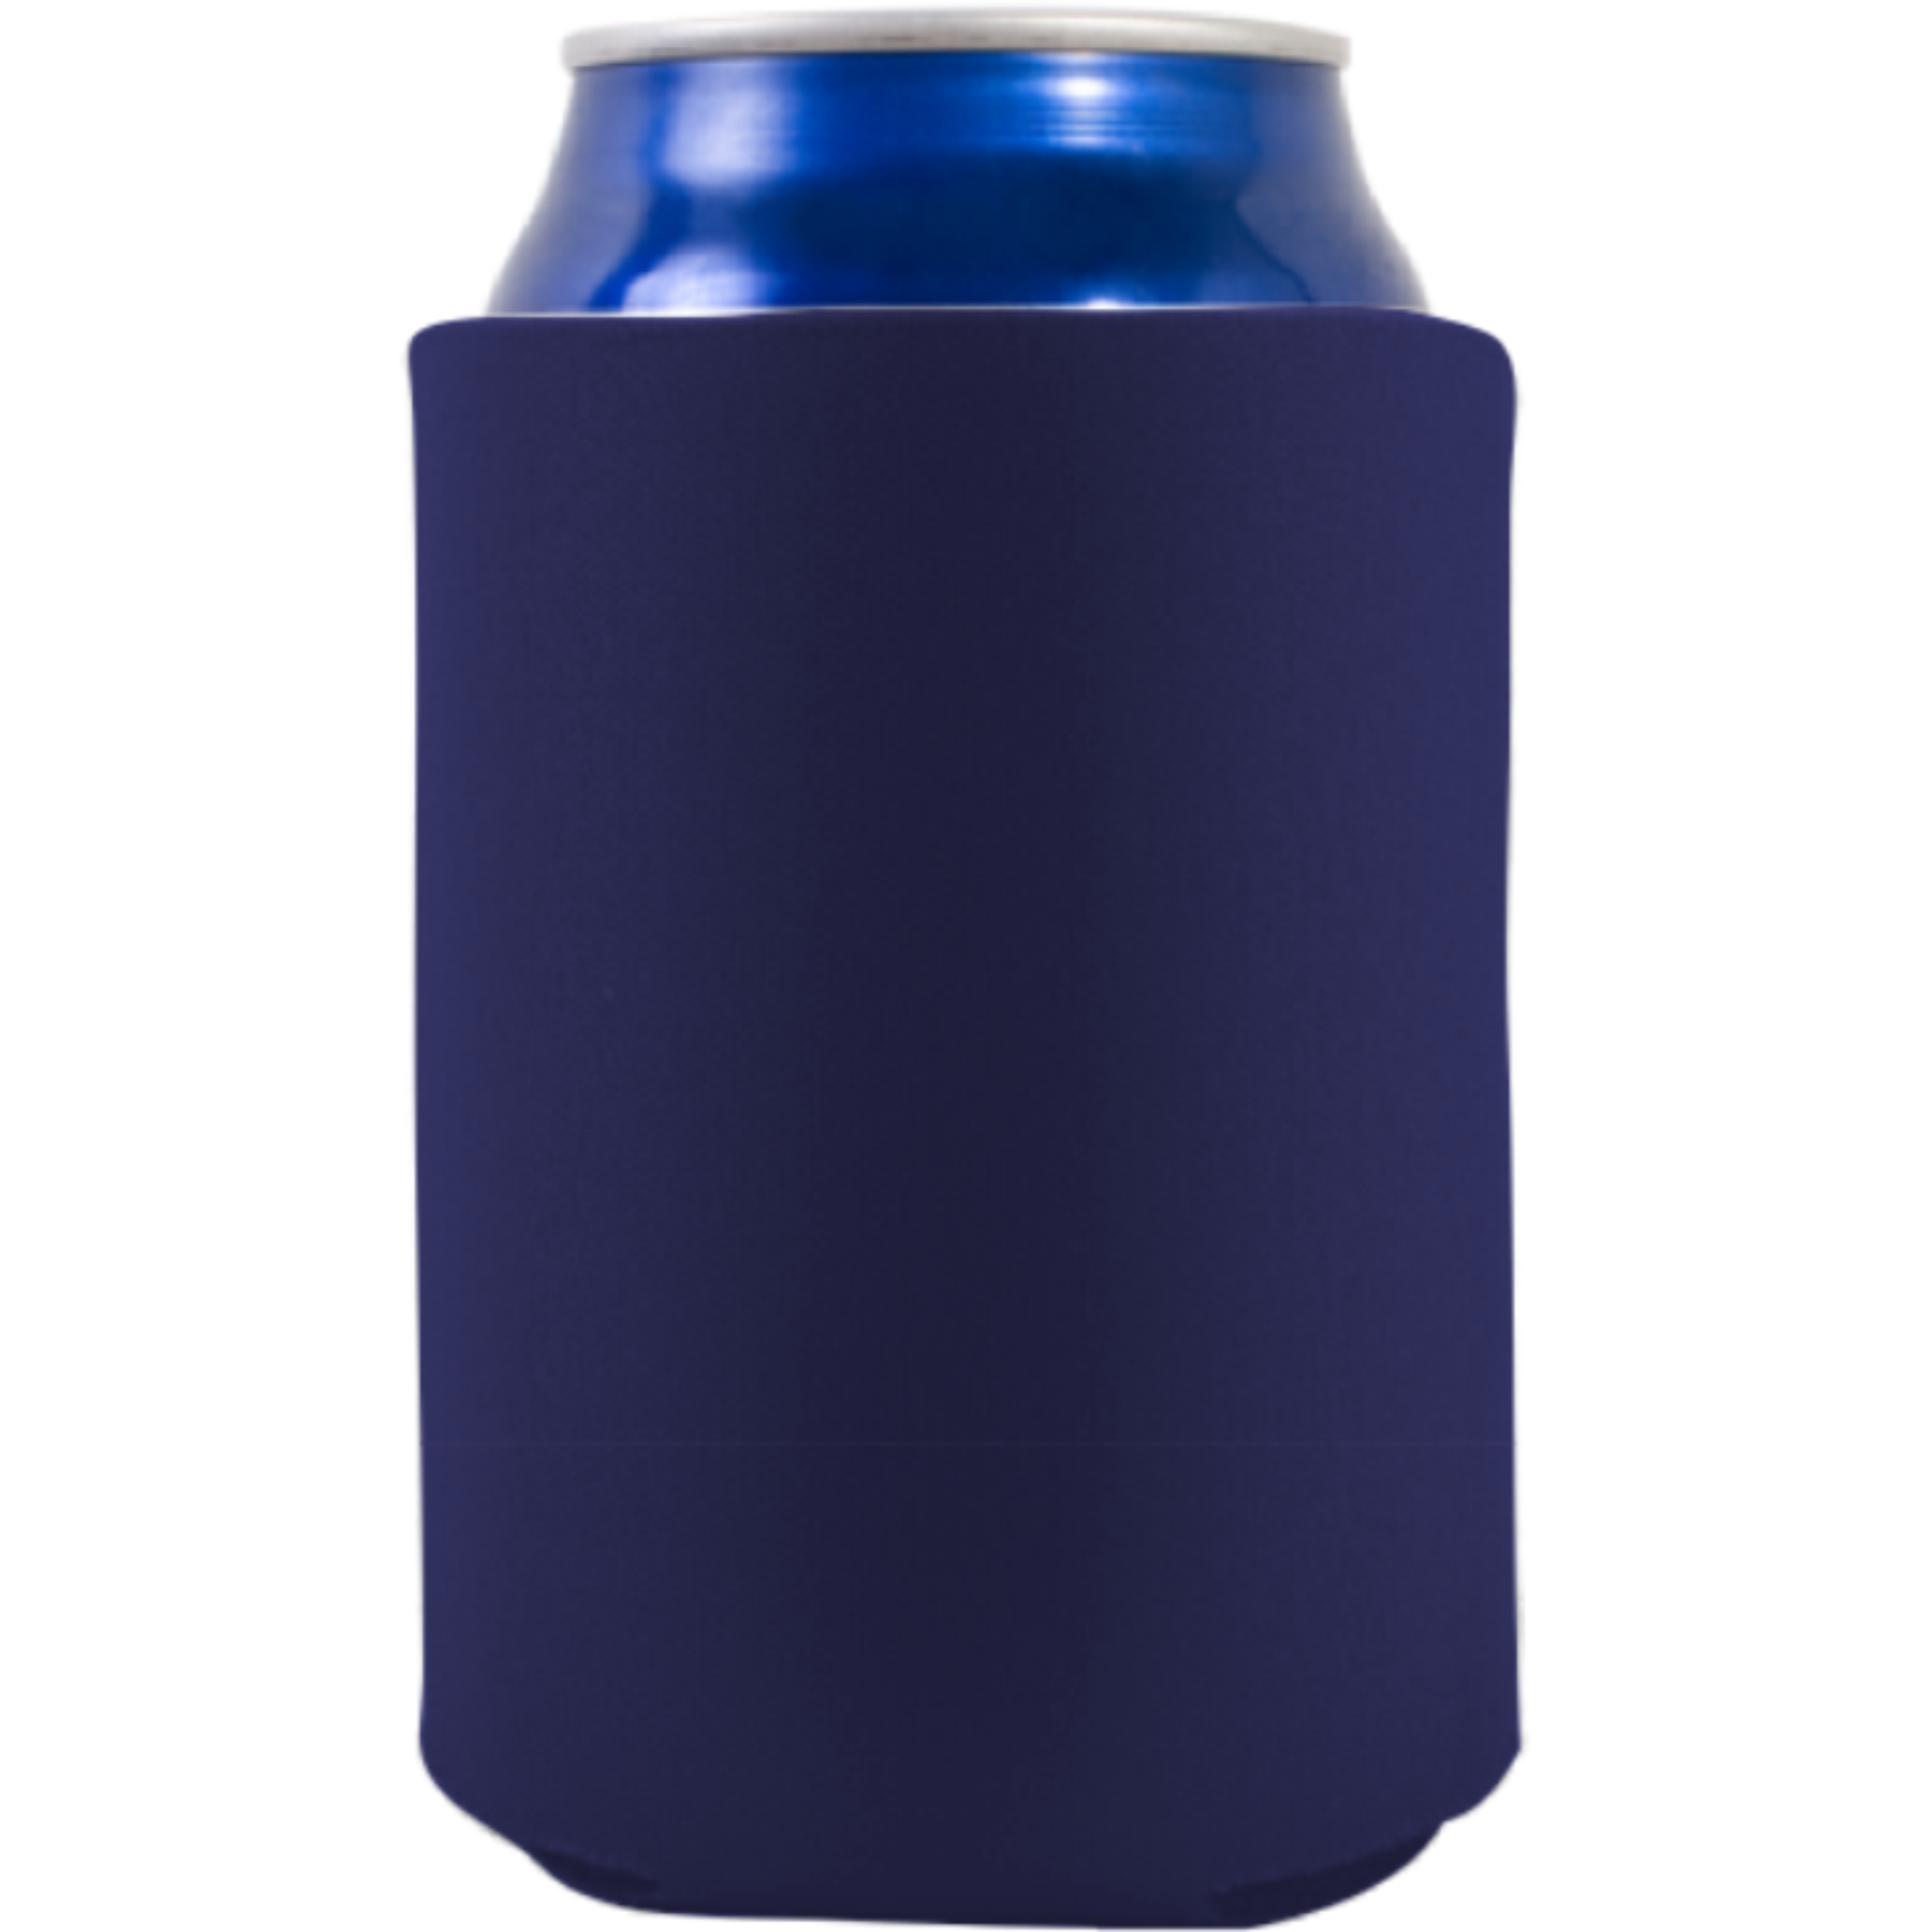 CSBD Bulk Can Coolers Party Insulators for Beer and Soda, 12 Packs, 25 Packs, 50 Packs, Great For Monograms, DIY Projects, Weddings, Parties, Events - 50 Pack (Black) by CSBD. $ $ 26 95 Prime. FREE Shipping on eligible orders. out of 5 stars Big Ol' Premium Blank Beverage Can Coolers.